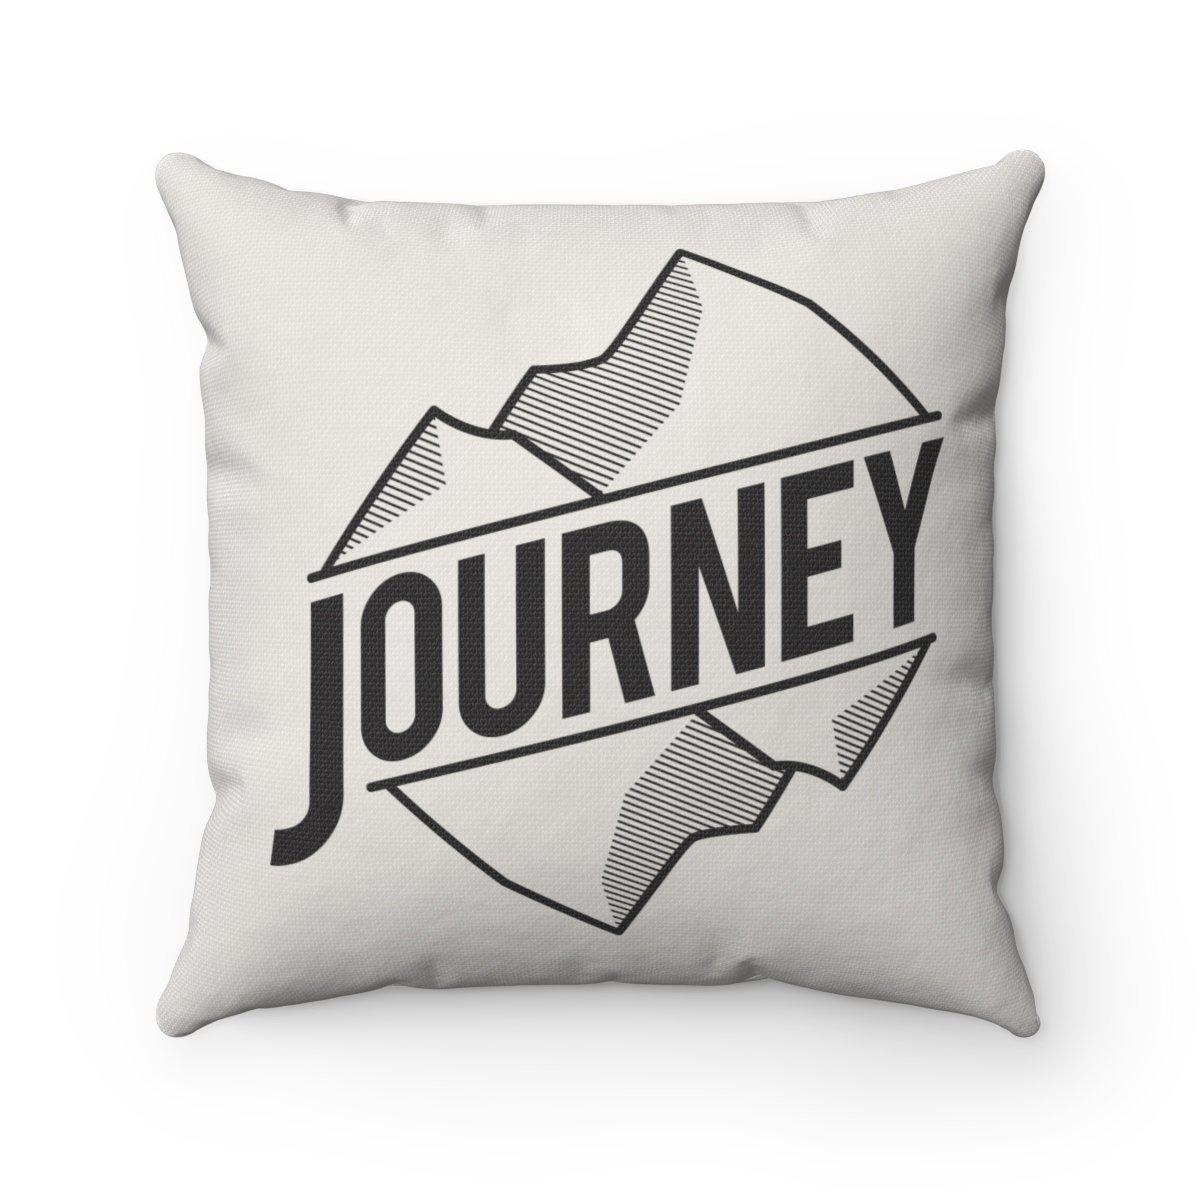 Journey 2 in 1 Double sided contemporary decorative cushion cover-Home Decor - Decorative Accents - Pillows & Throws - Decorative Pillows-Maison d'Elite-Très Elite